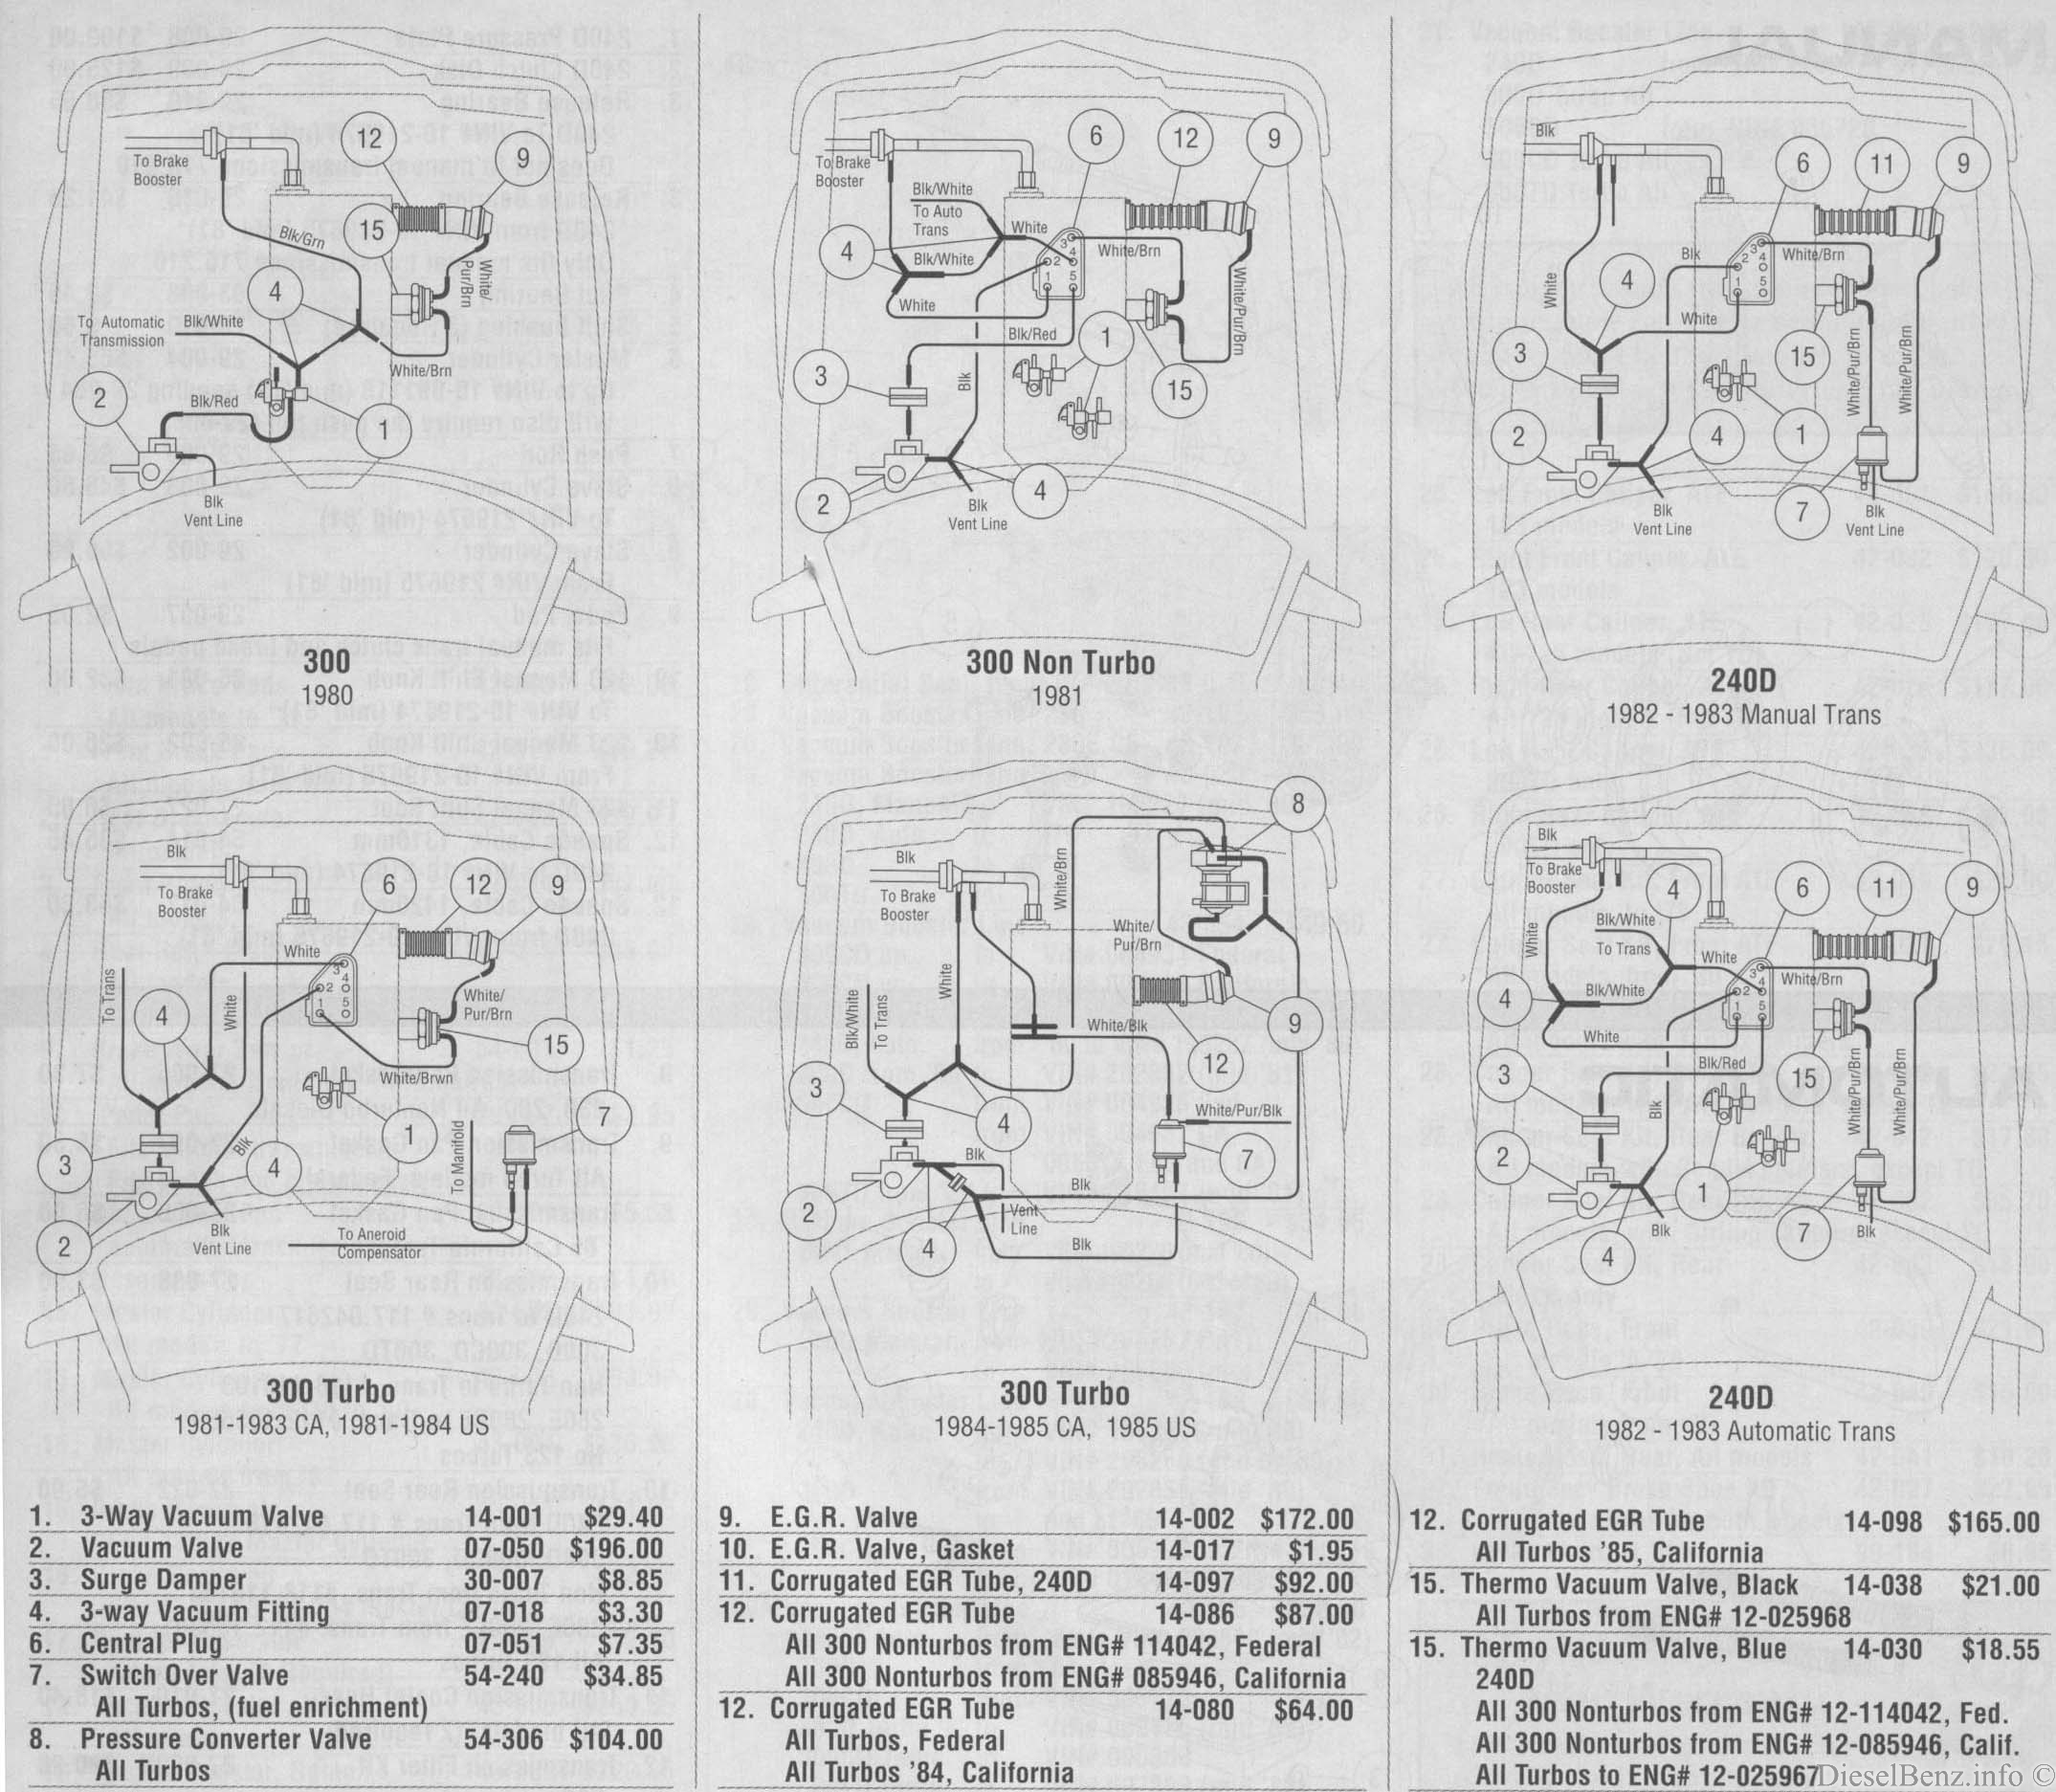 1989 Mercedes 230 Wiring Diagram Vehicle Diagrams S Cl W126 300sd 1983 Fuse Box Readable Vacuum 240d 300d 80 85 Peachparts Rh 1991 300e 1988 Hose